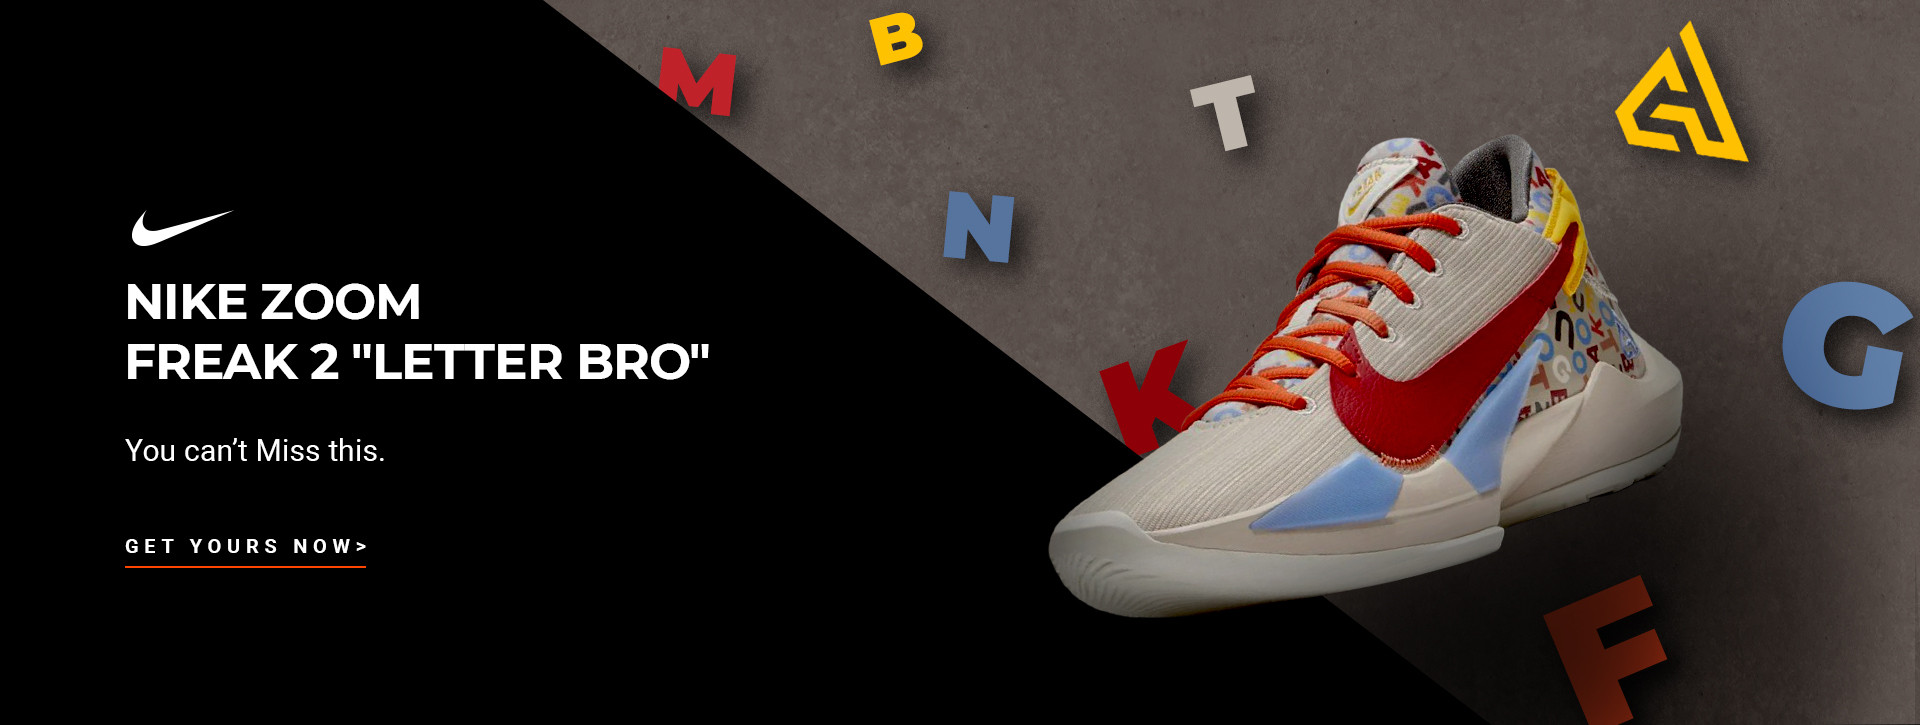 "Nike Zoom Freak 2 ""Letter Bro"" Men's Shoes"